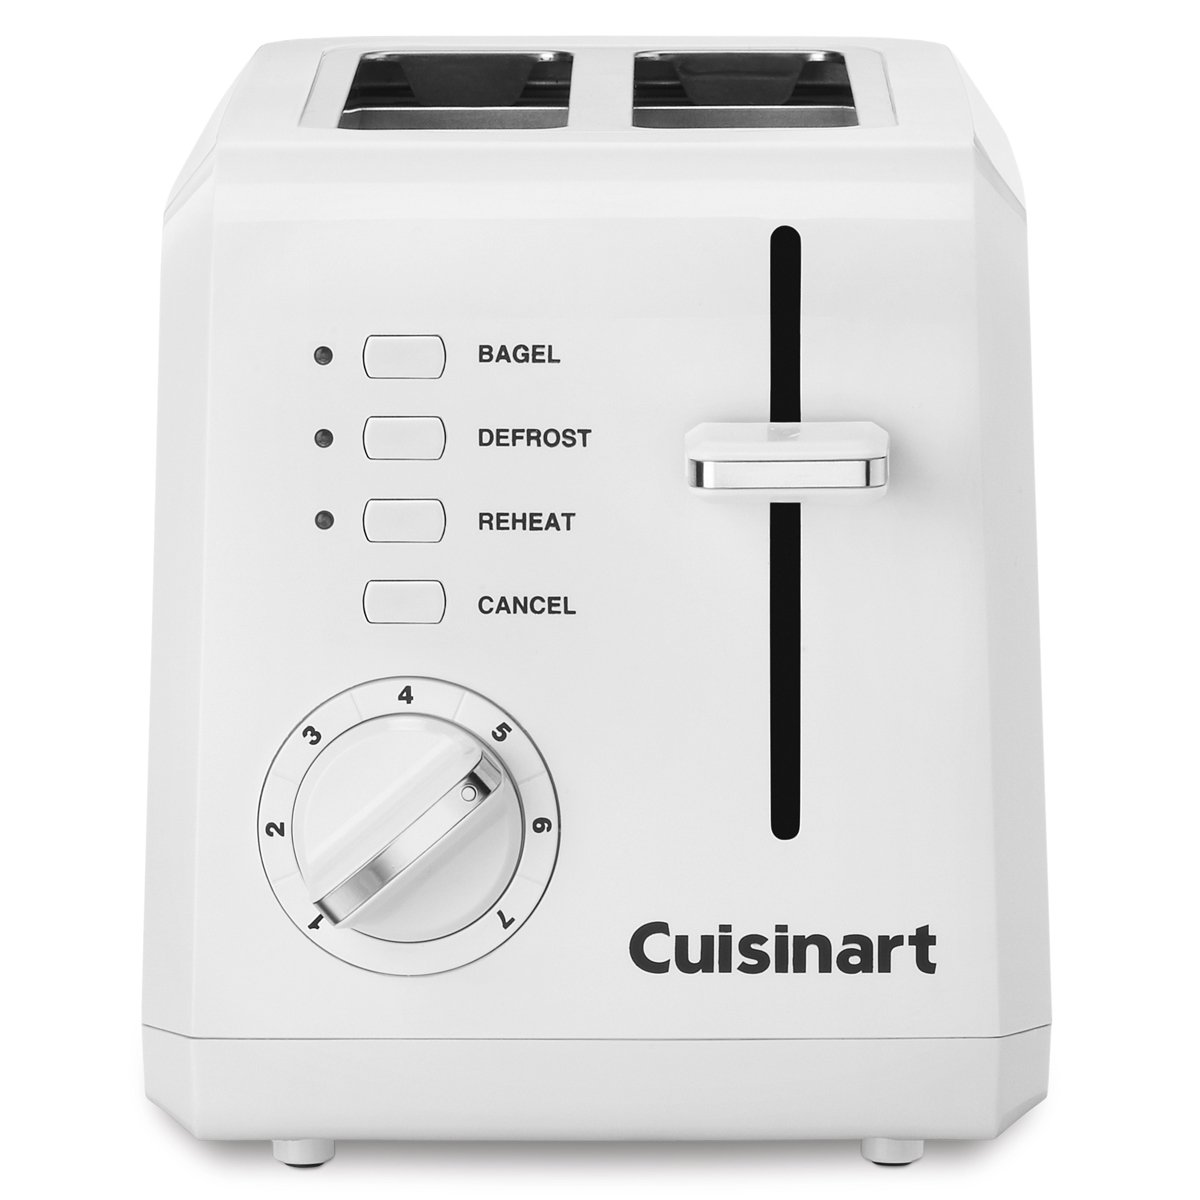 Cuisinart CPT-122 2-Slice Compact Plastic Toaster (White) by Cuisinart